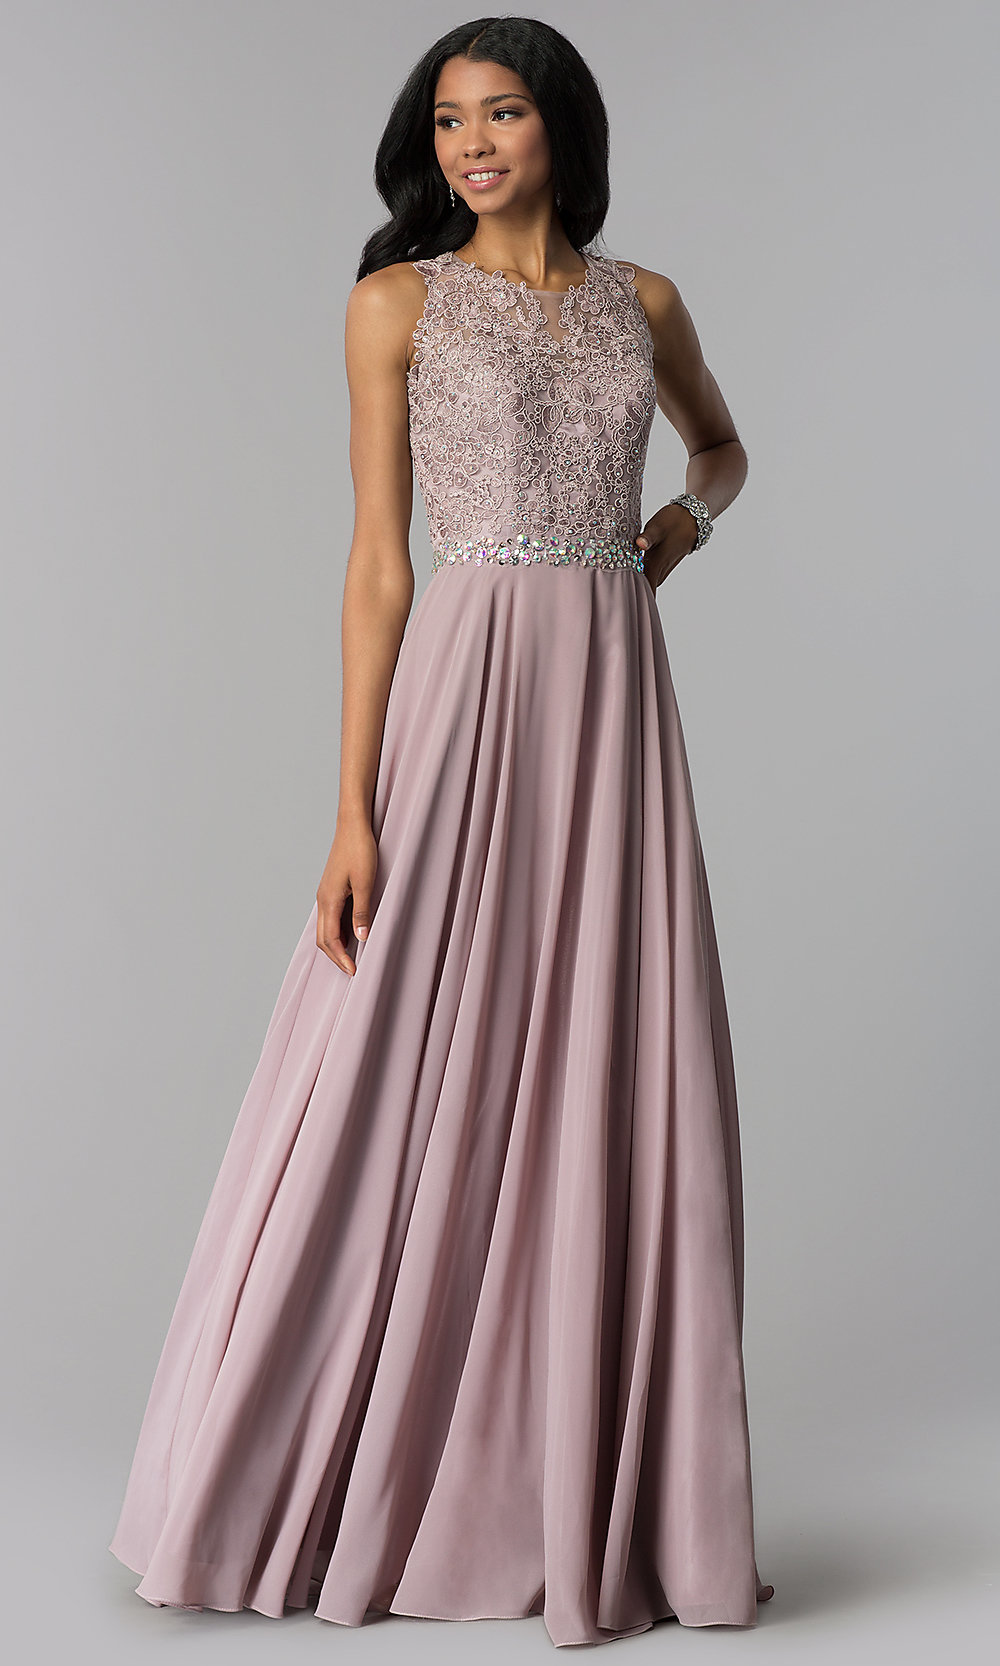 Tap to expand · Image of chiffon long mauve prom dress with lace ... 7ff3bcade